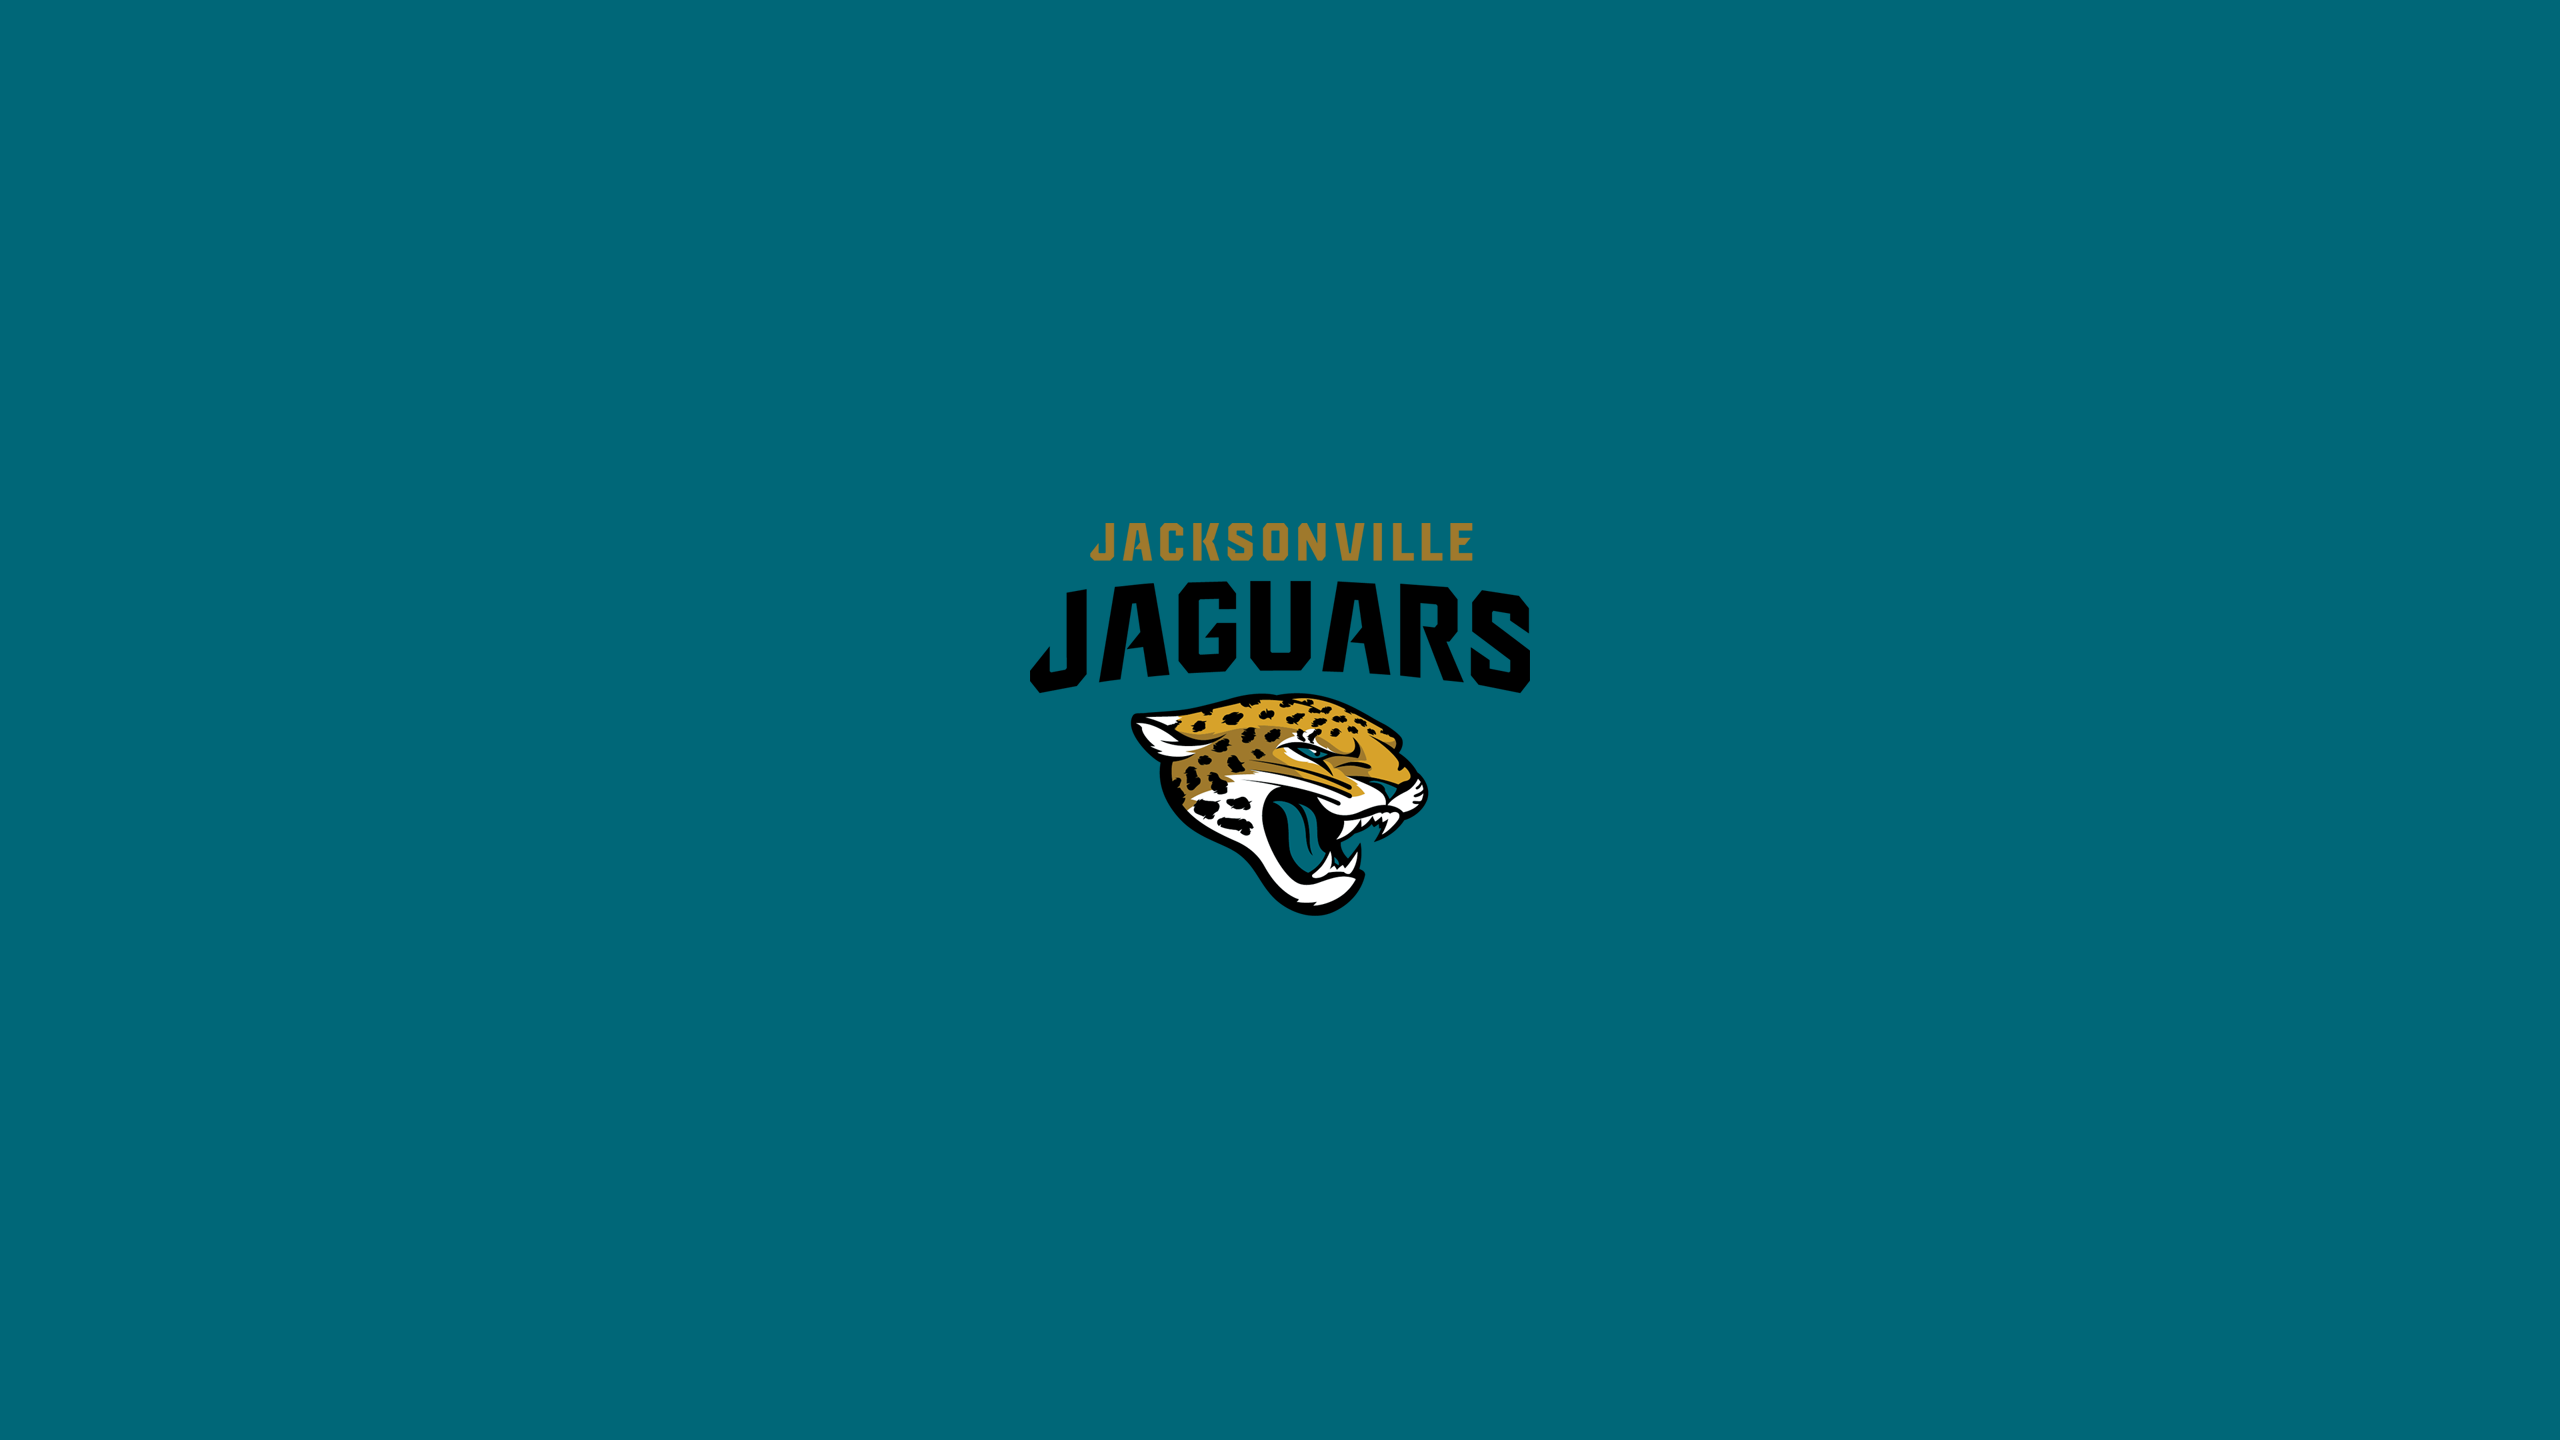 JACKSONVILLE JAGUARS nfl football b wallpaper background 2560x1440